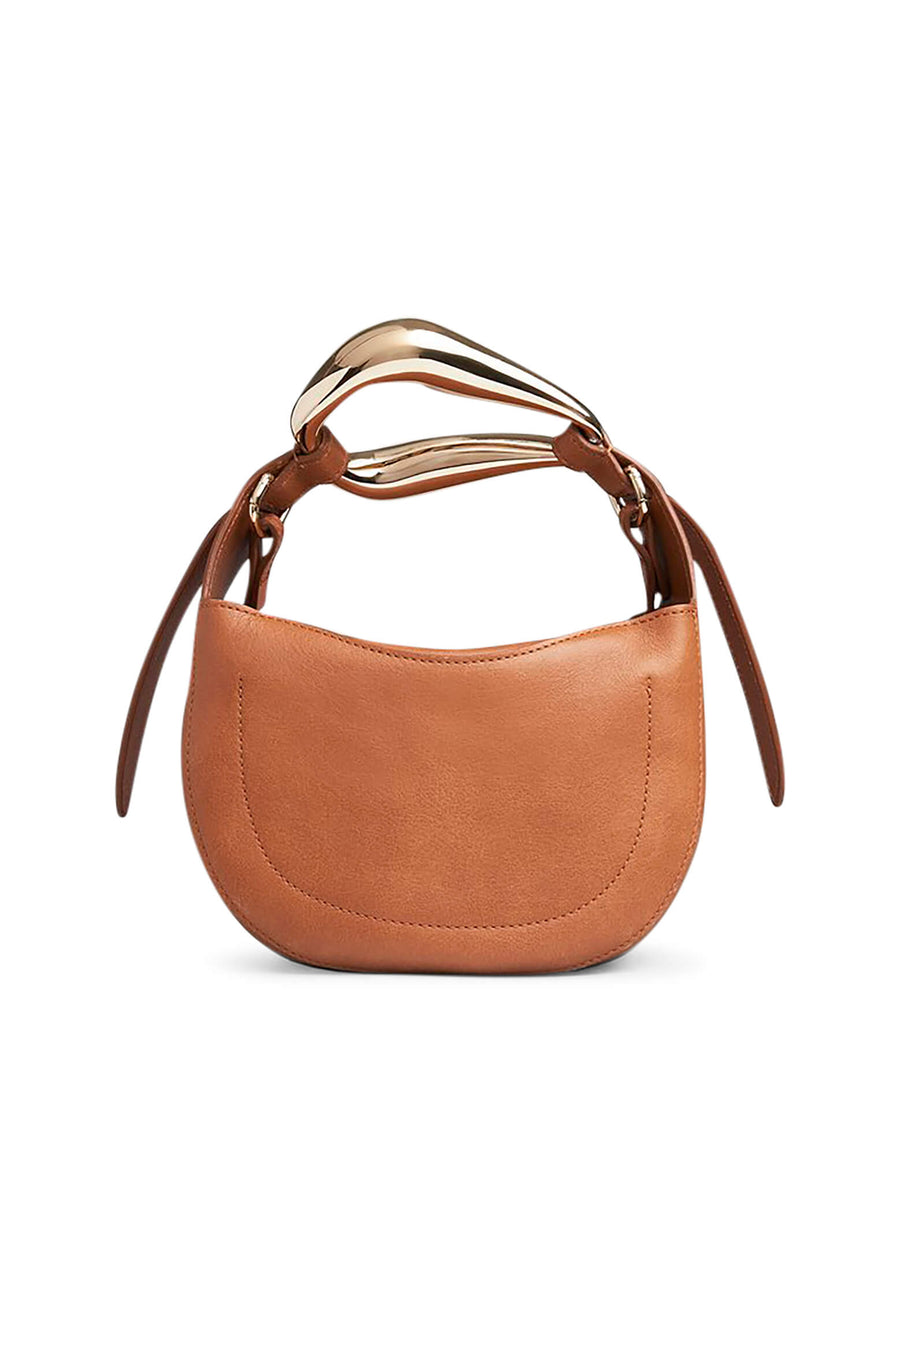 Chloe Kiss Small Bag in Arizona Brown from The New Trend